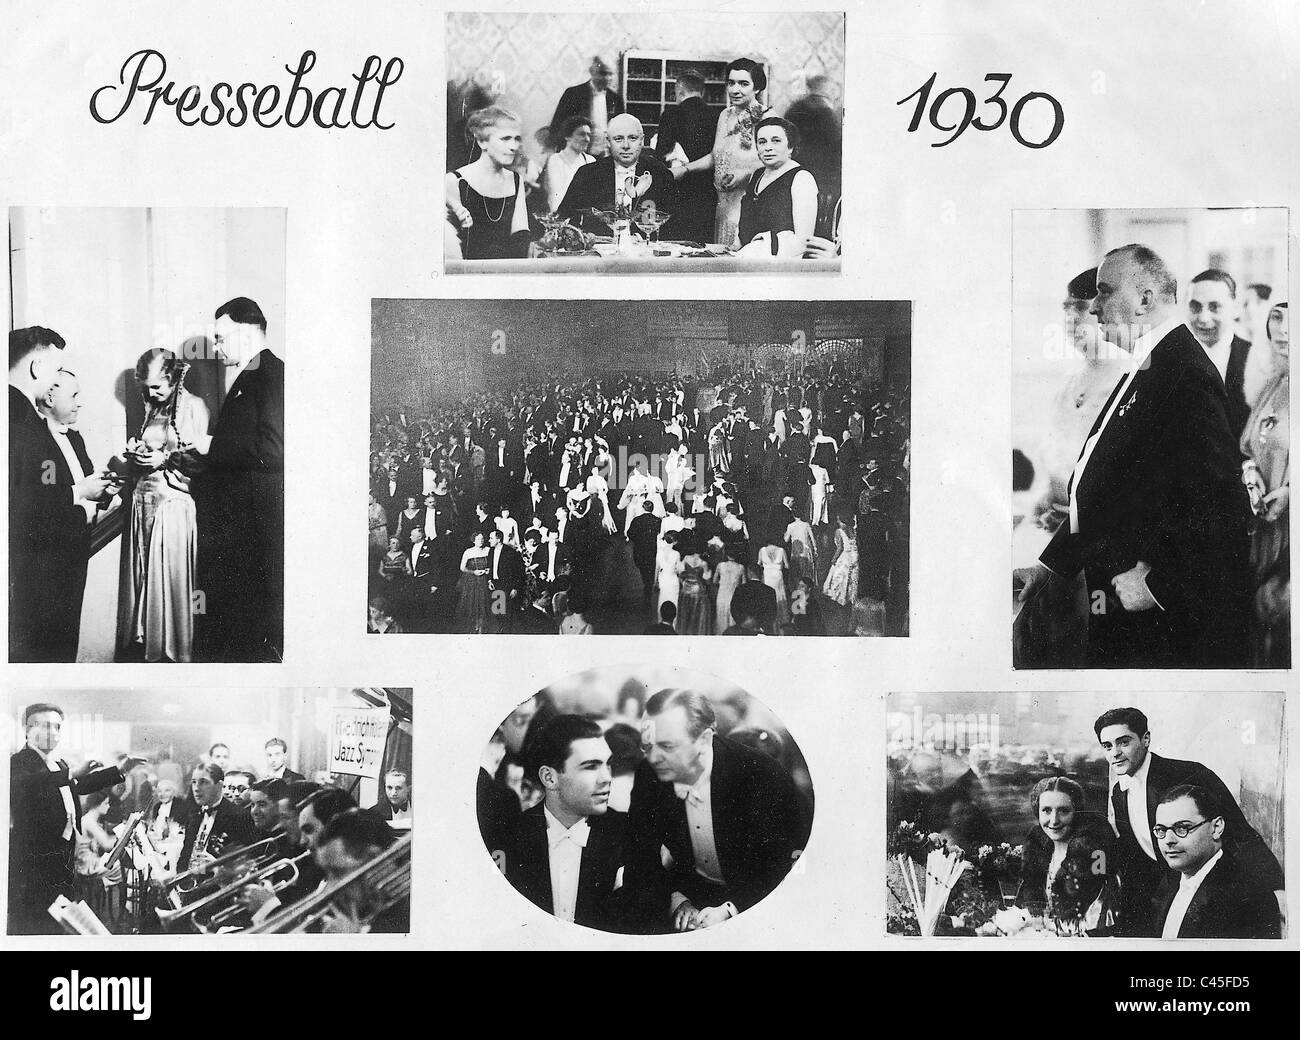 Photos of the Berlin press ball in 1930 - Stock Image